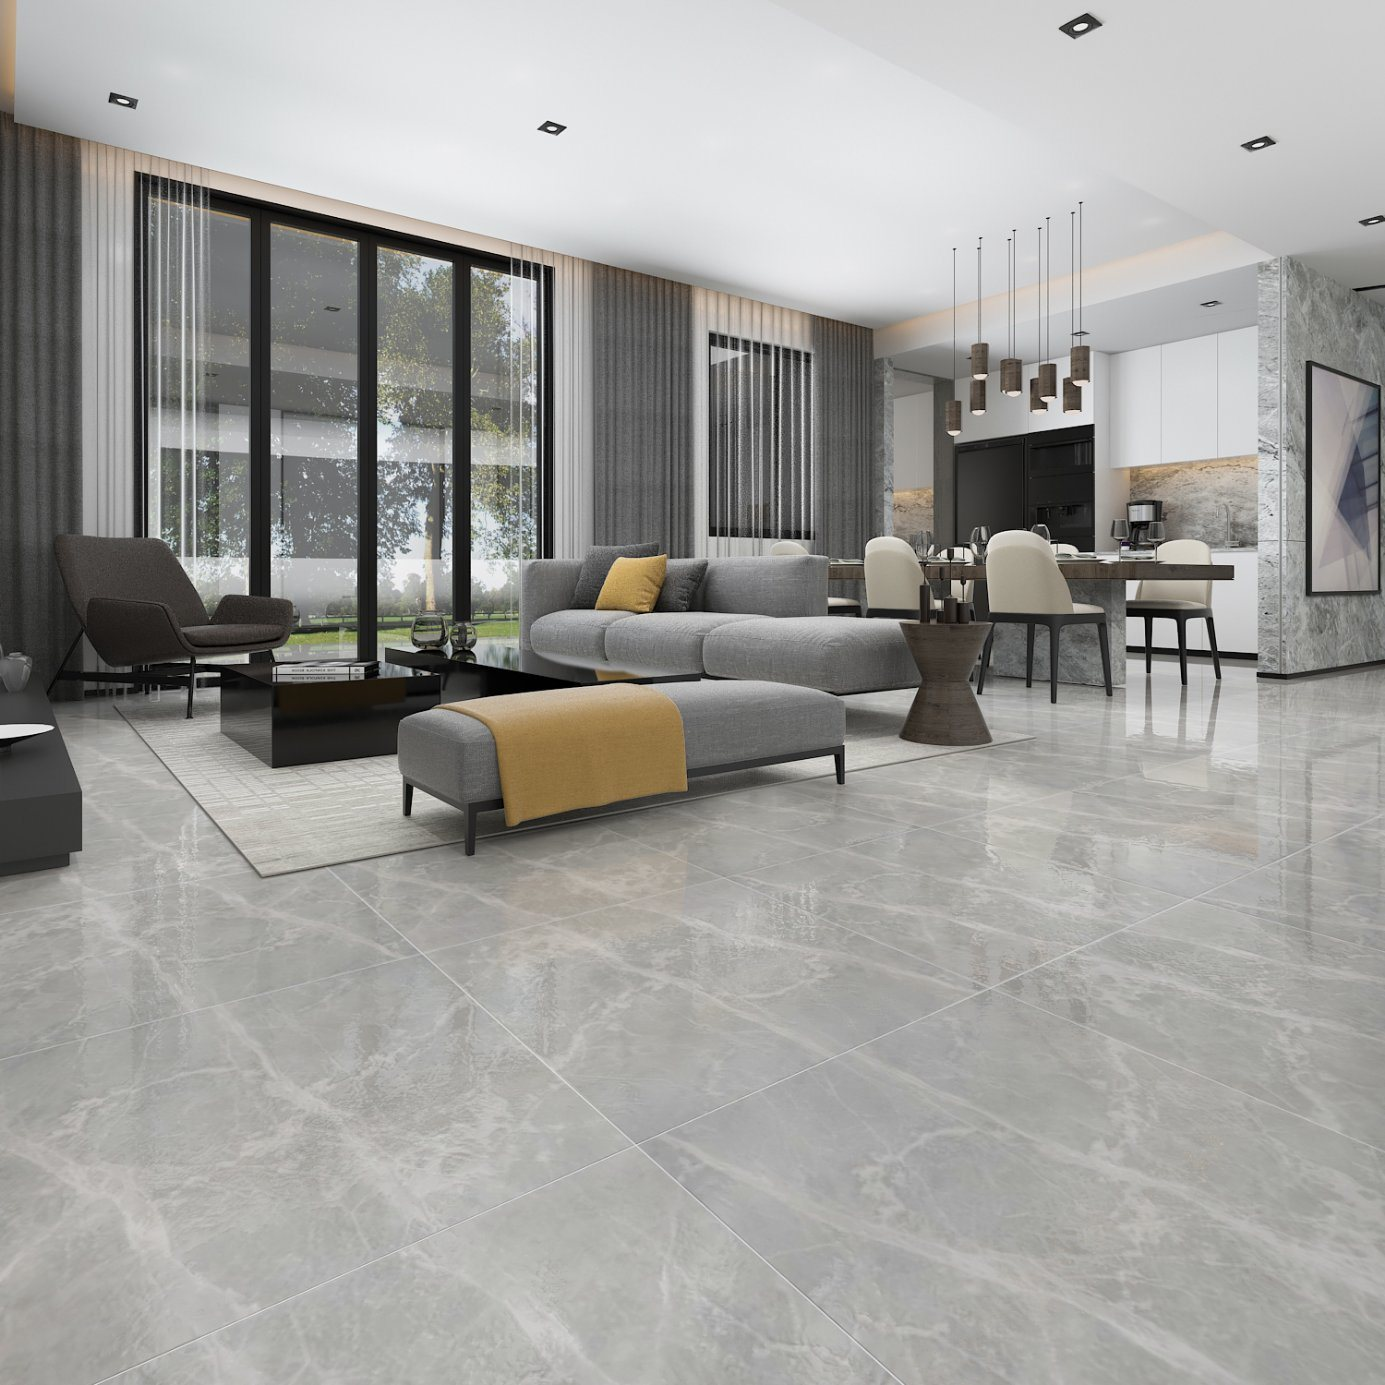 China Factory Price 600x600 Josiah Ash Athens Grey Marble Tile China Flooring Tile Floor Tile